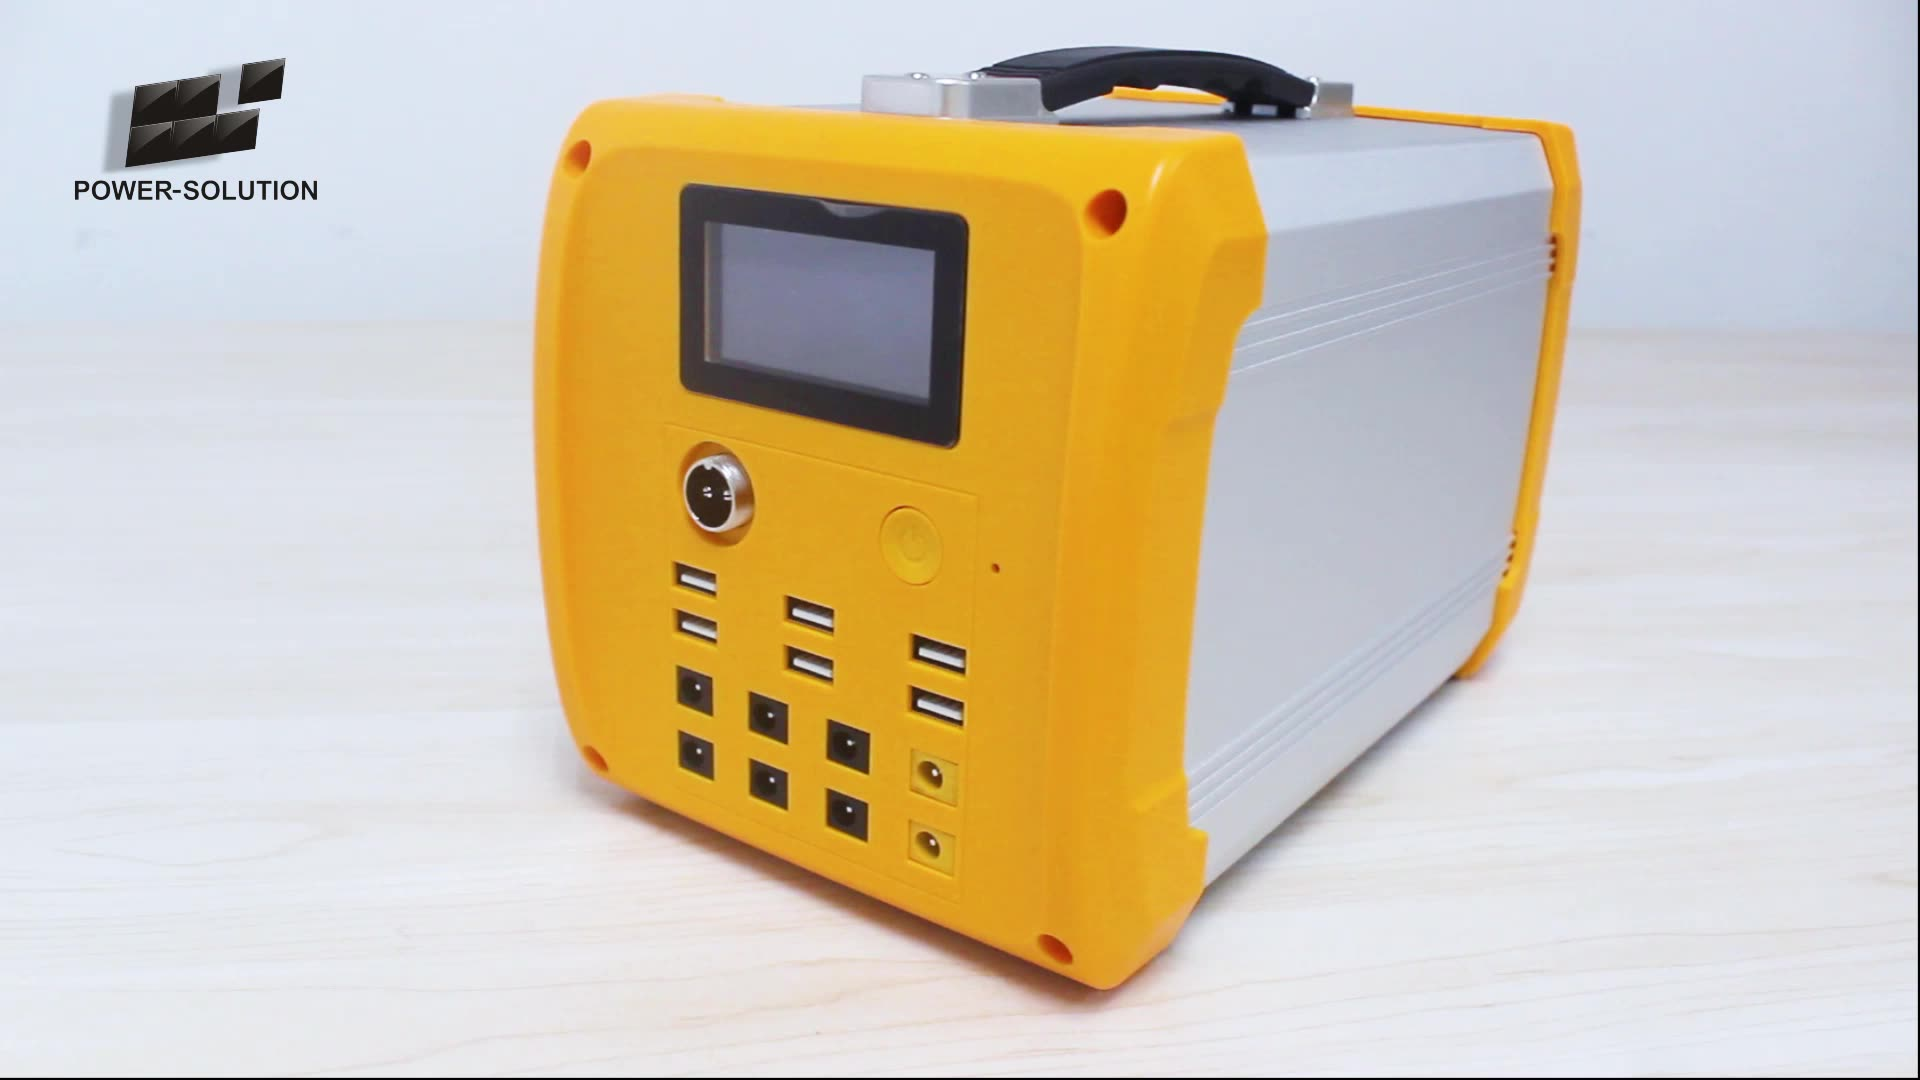 Factory Price 100 Watt Solar Energy Generator System For 6 Mobile Phone Charging And Lighting 6 Rooms To Run TV And Fan